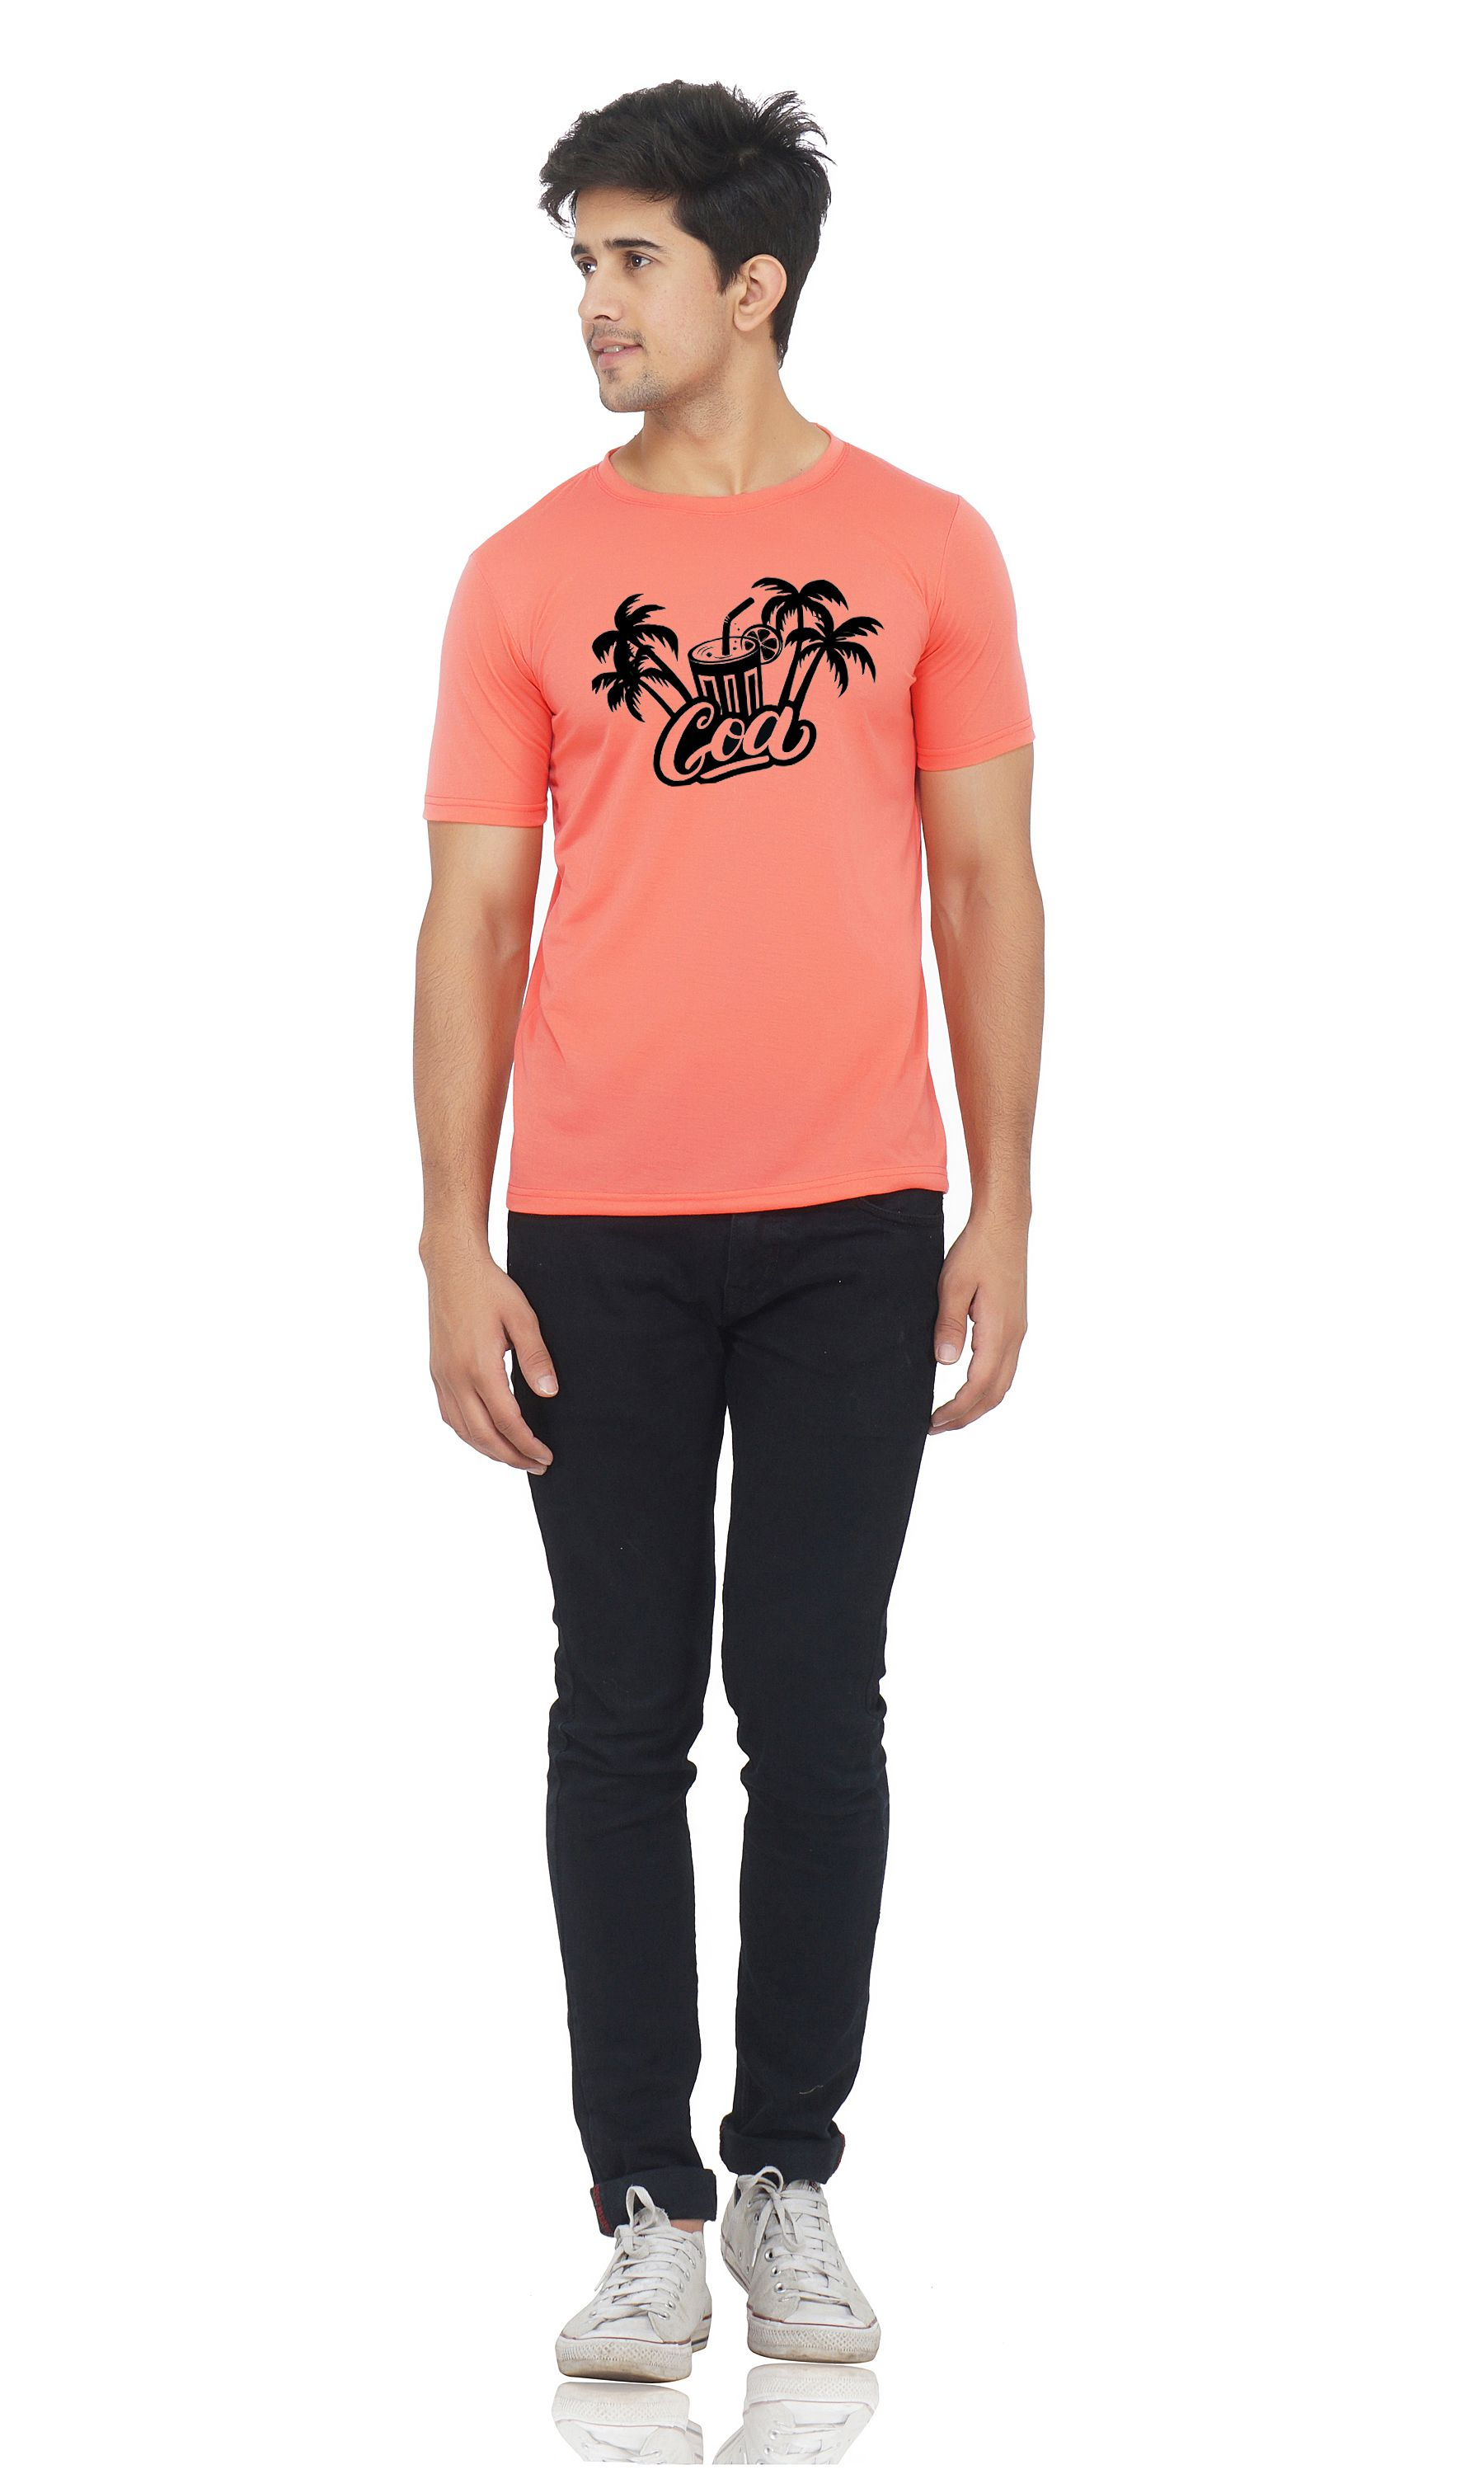 M R MARC ROSE Peach Round T-Shirt Pack of 1